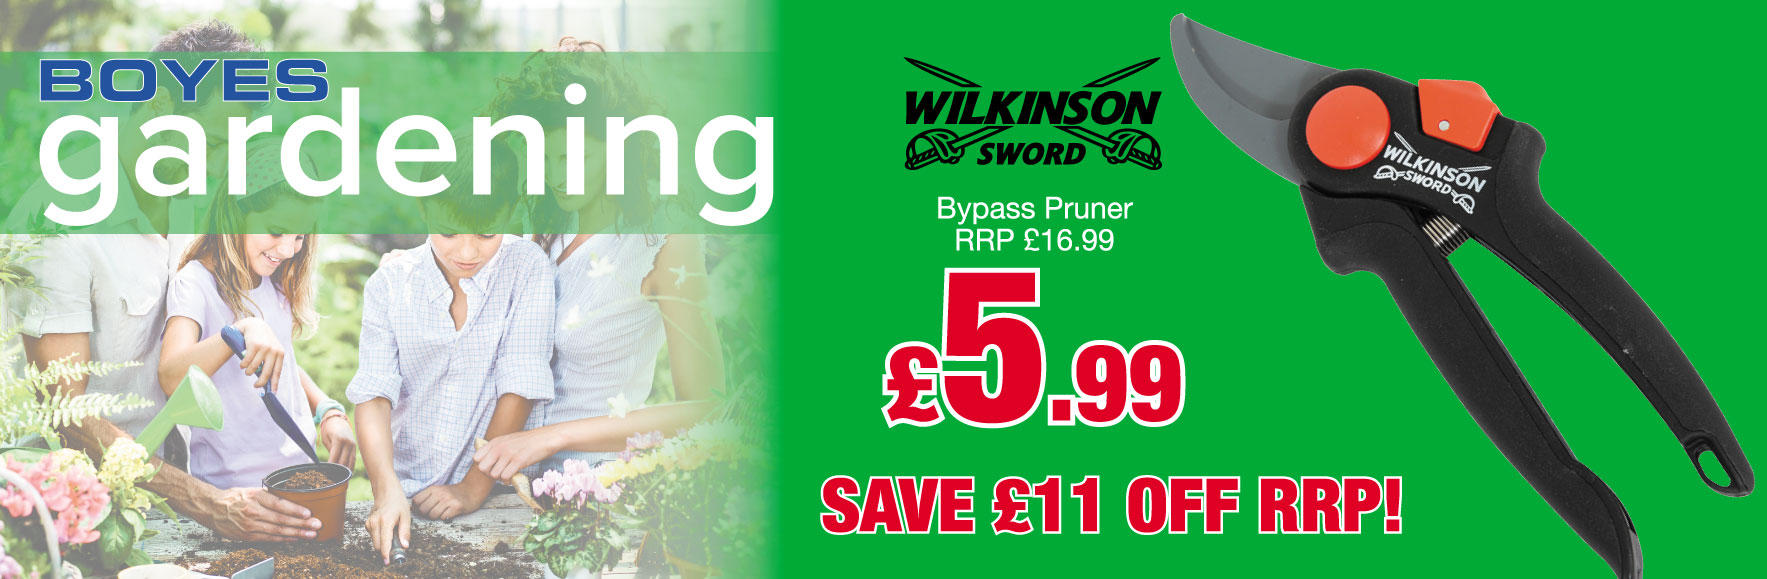 Wilkinson Sword Bypass Pruner RRP £16.99 ONLY £5.99